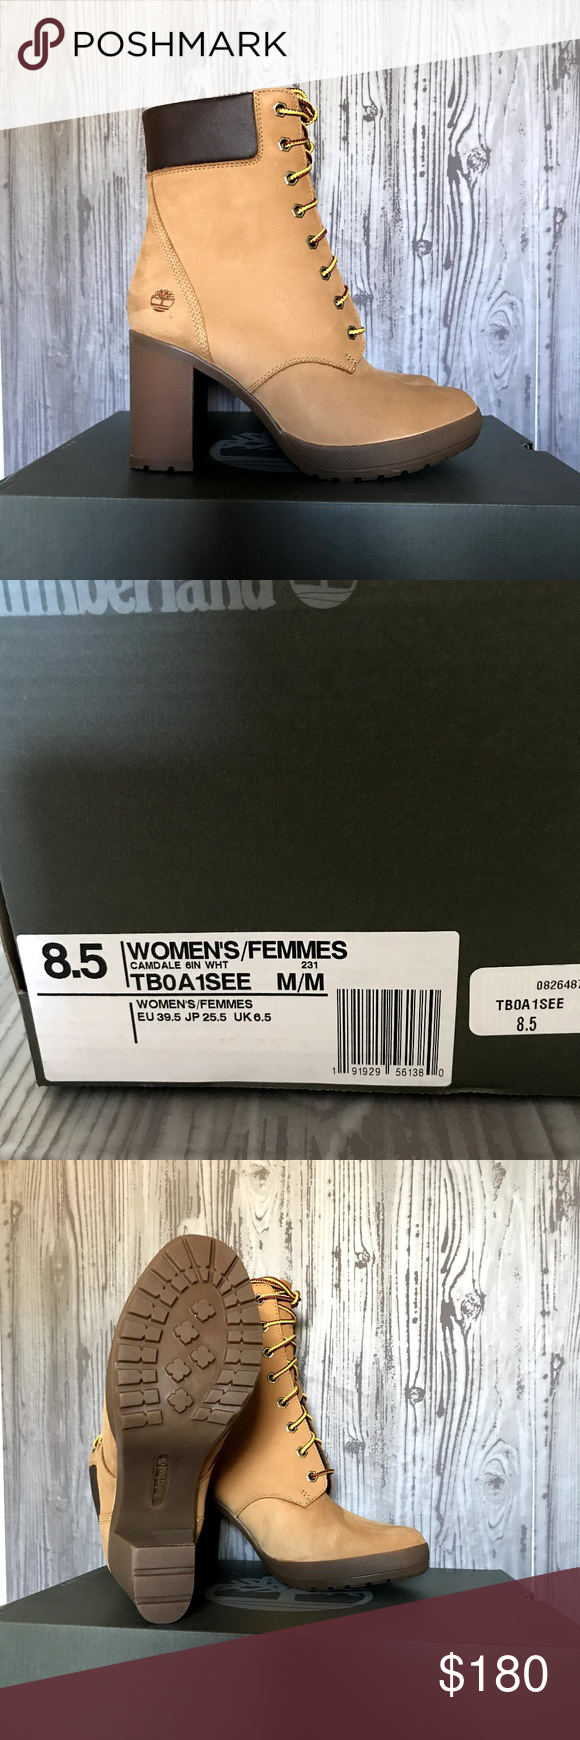 b59b1888e81 TIMBERLAND WOMEN'S CAMDALE CHUNKY HEEL BOOTS These boots are a great ...